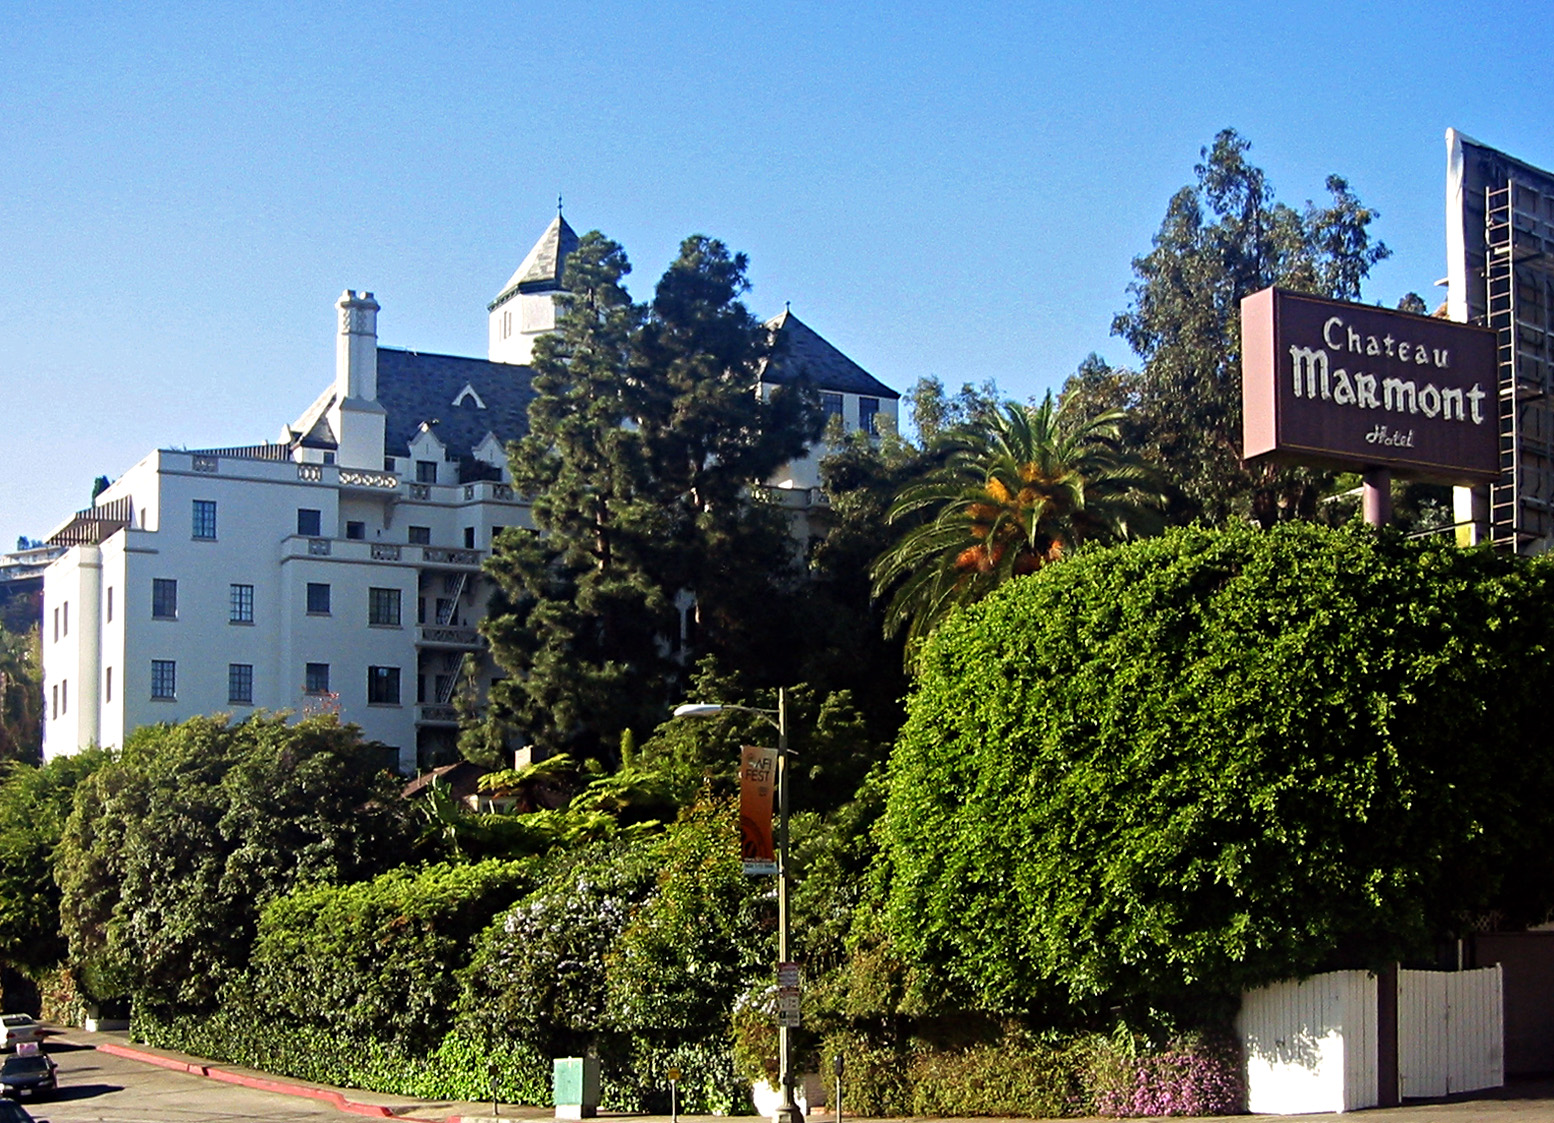 A daytime look at the iconic hotel the Chateau marmont.